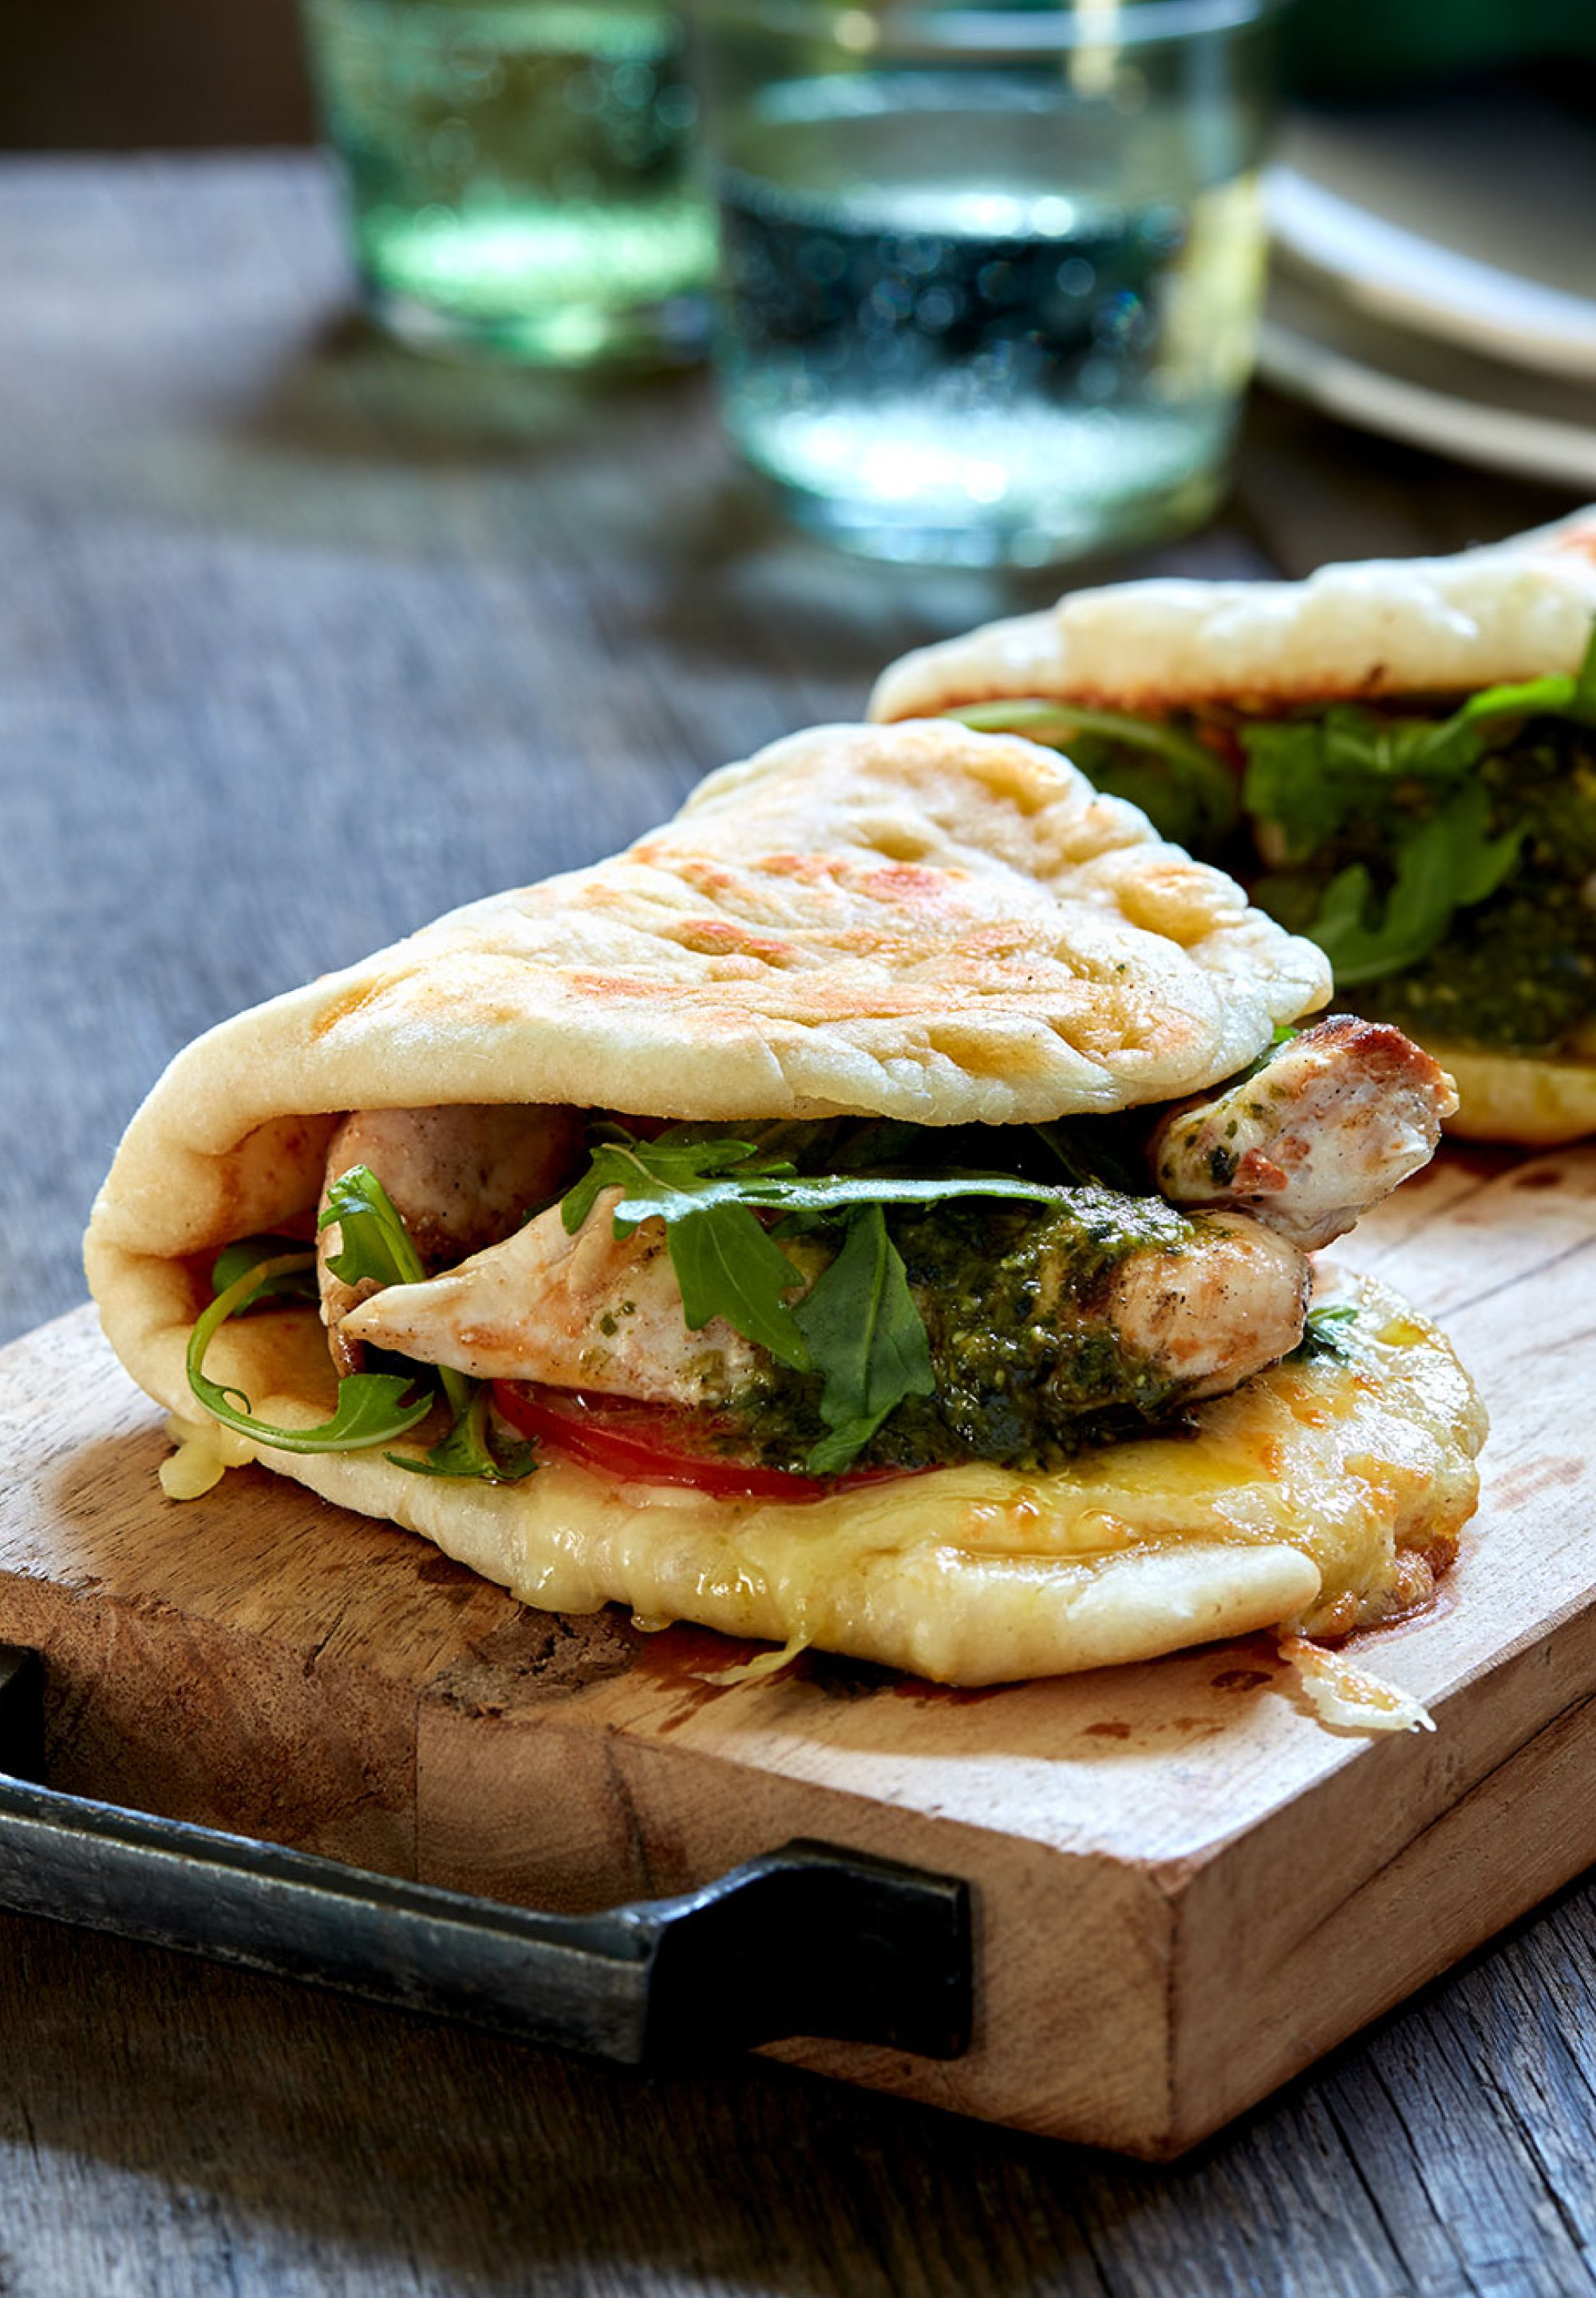 Grilled Chicken And Pesto Piadina